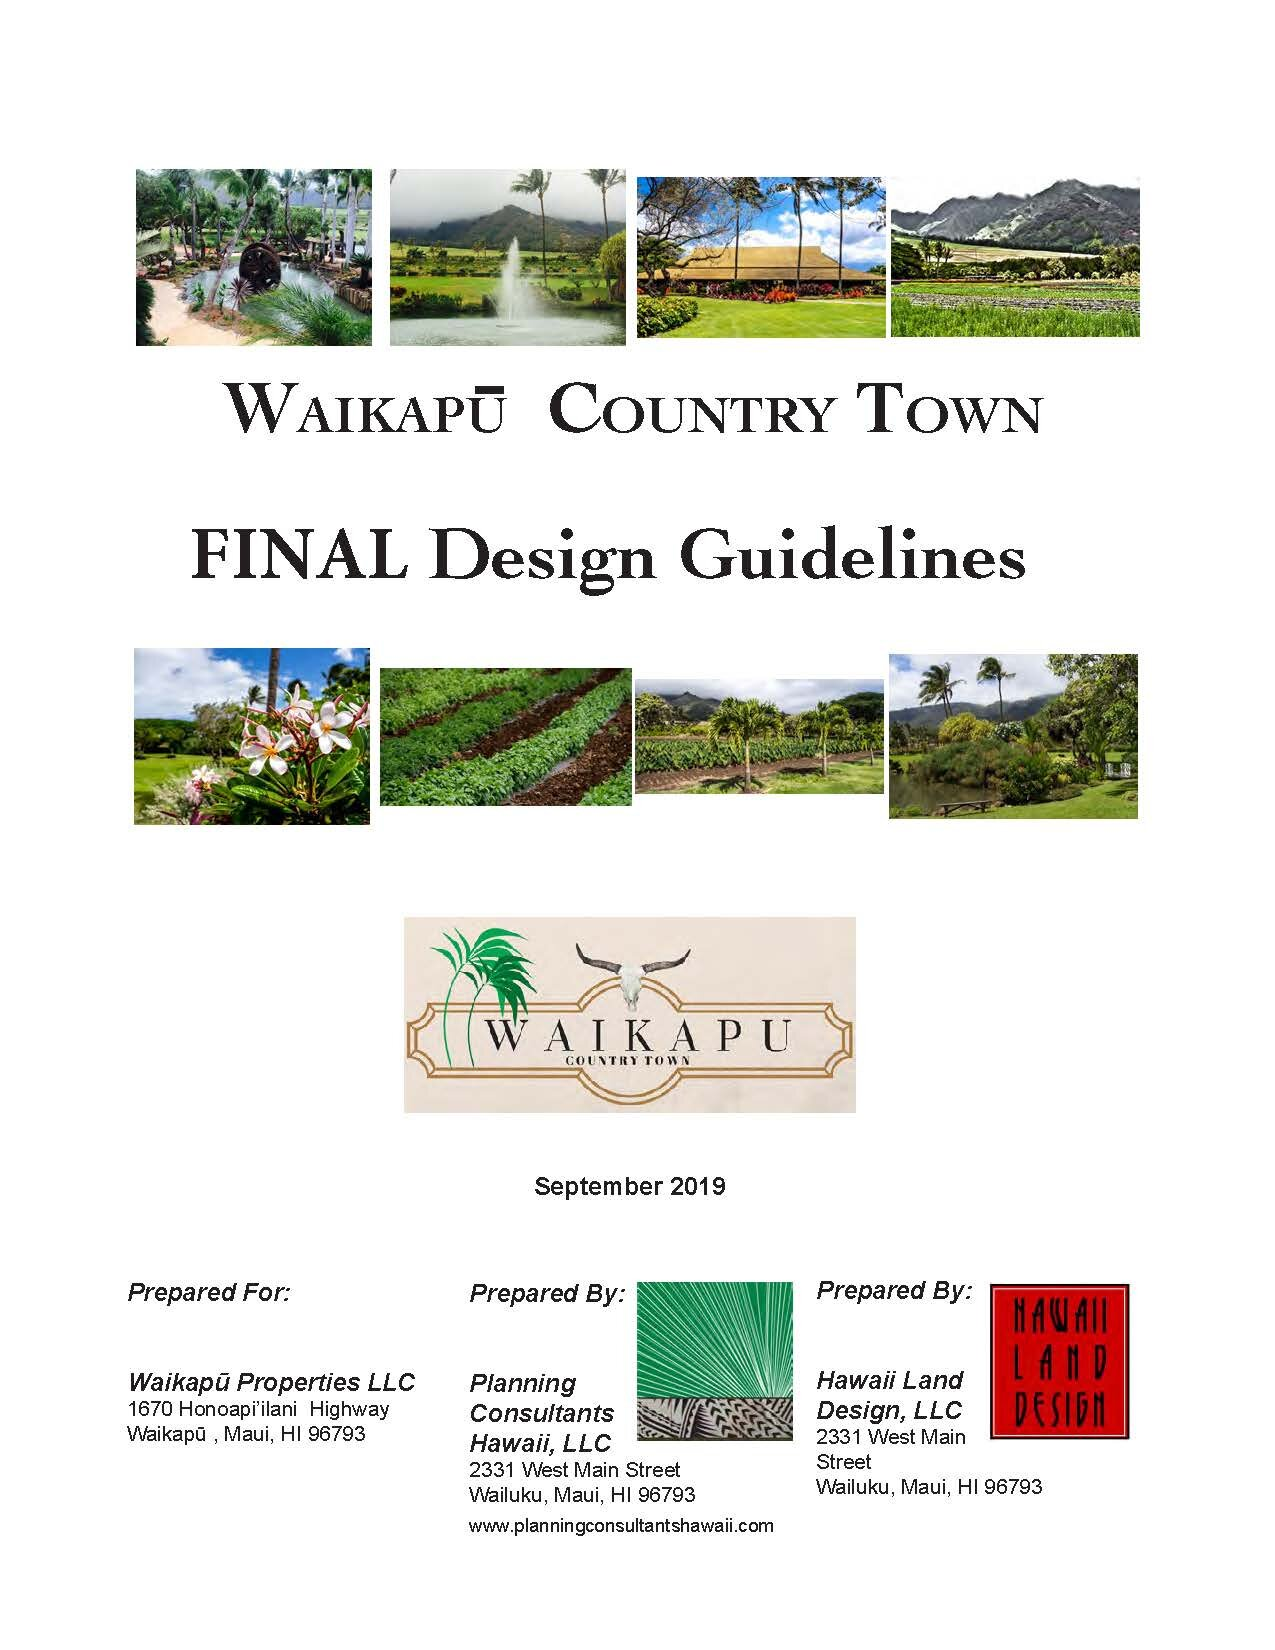 Waikapu Country Town - Final Design Guidelines - September 2019